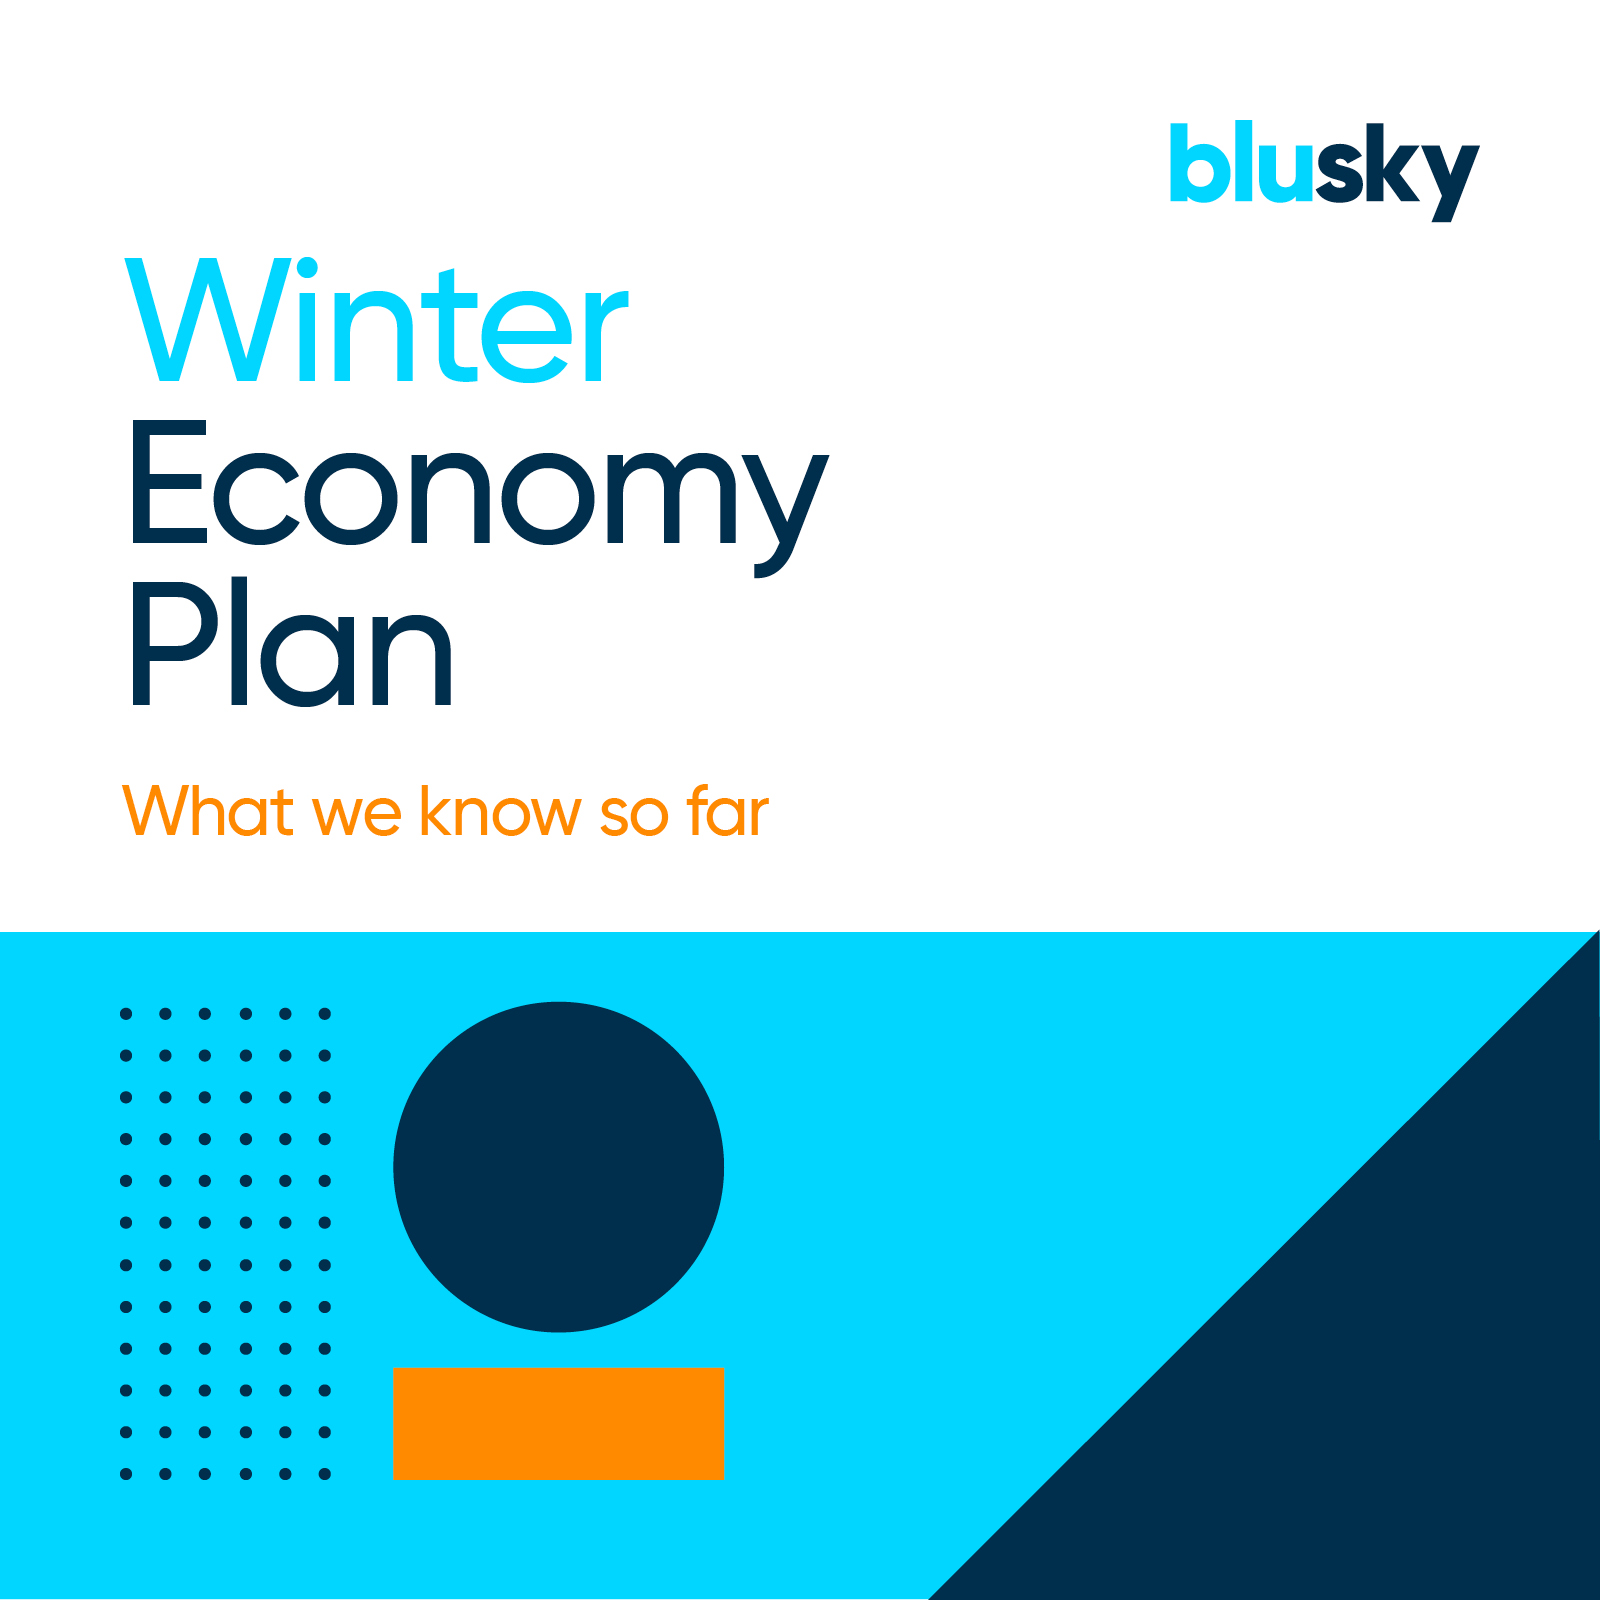 The 'Winter Economy Plan'